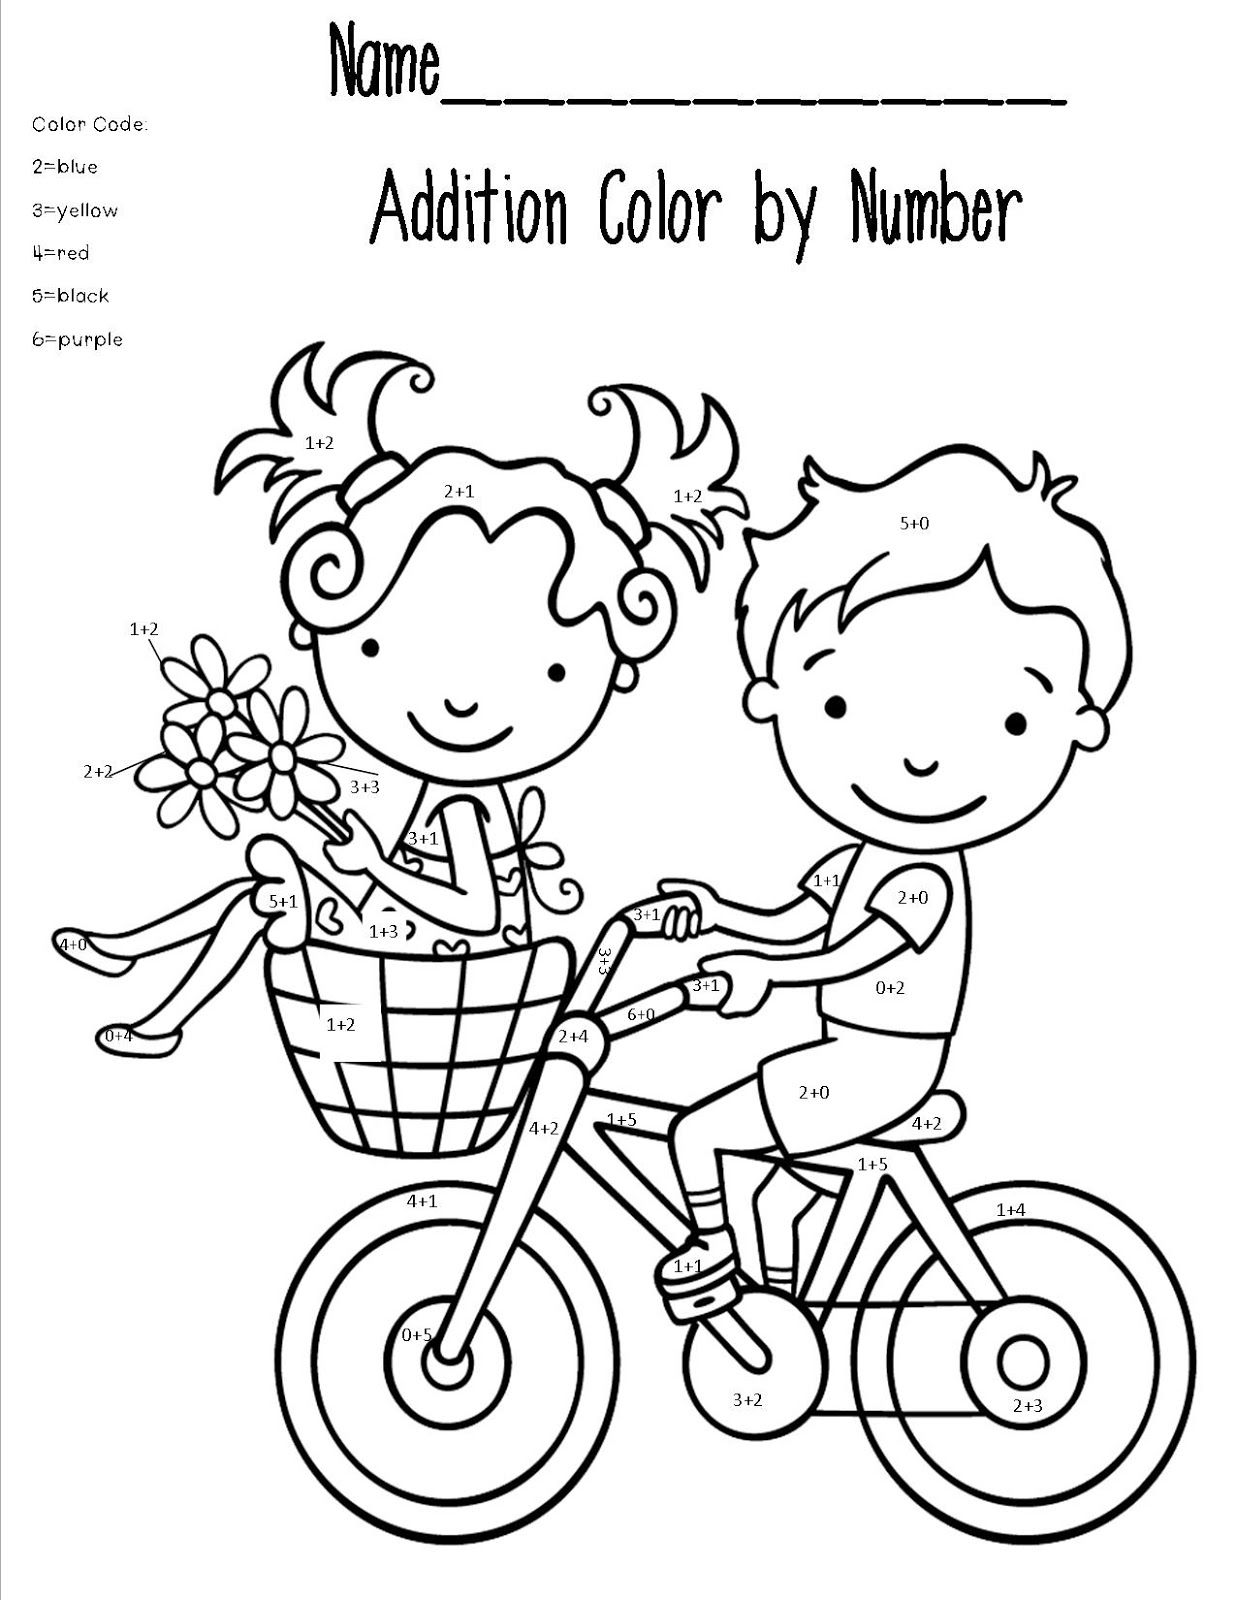 worksheet Coloring Addition Worksheets math coloring pages addition worksheet school ideas pinterest free printable for kids best kids